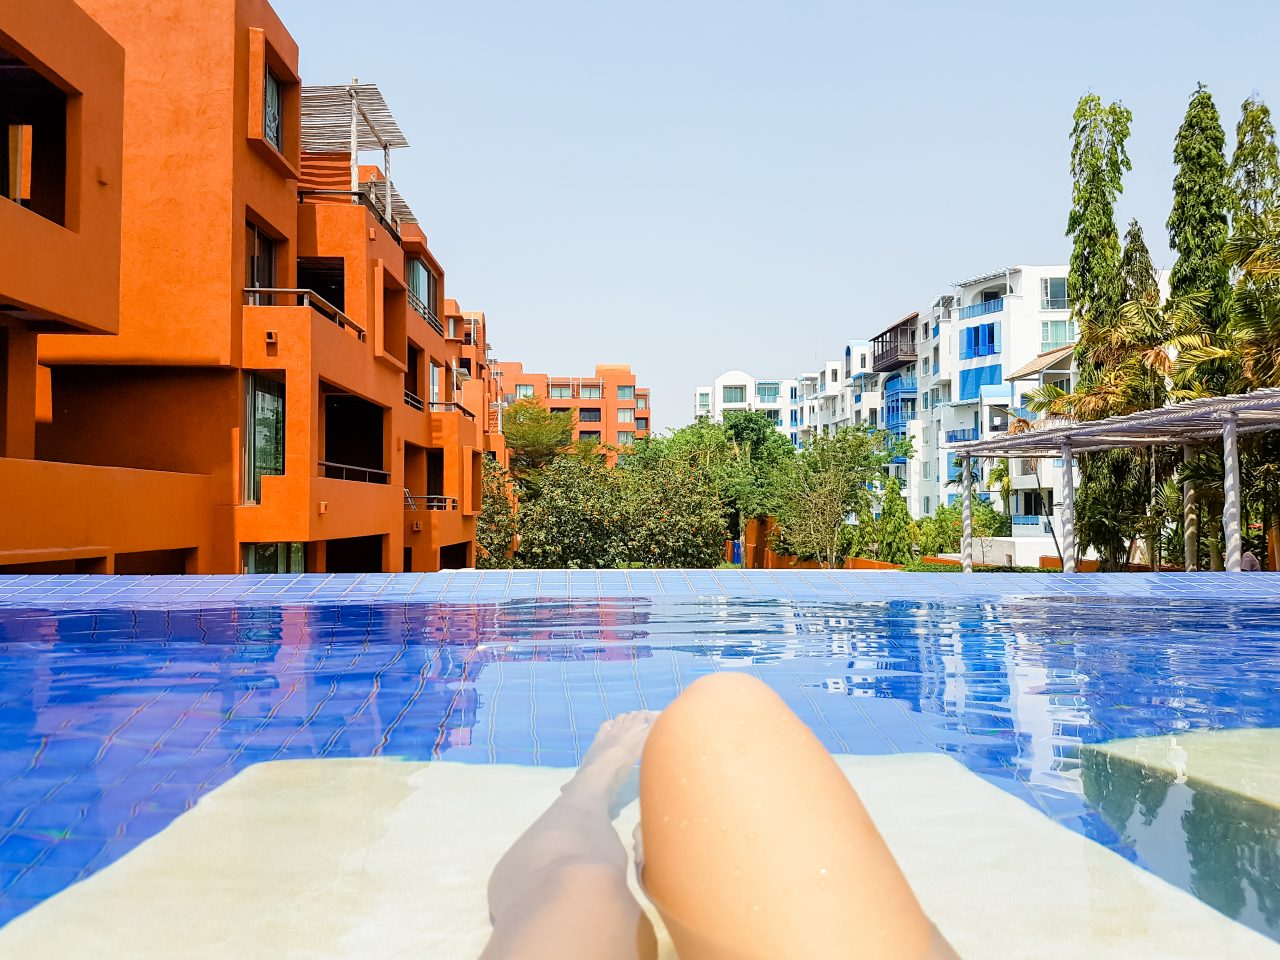 Woman lying on a lounger by the pool at the hotel. Girl at trave